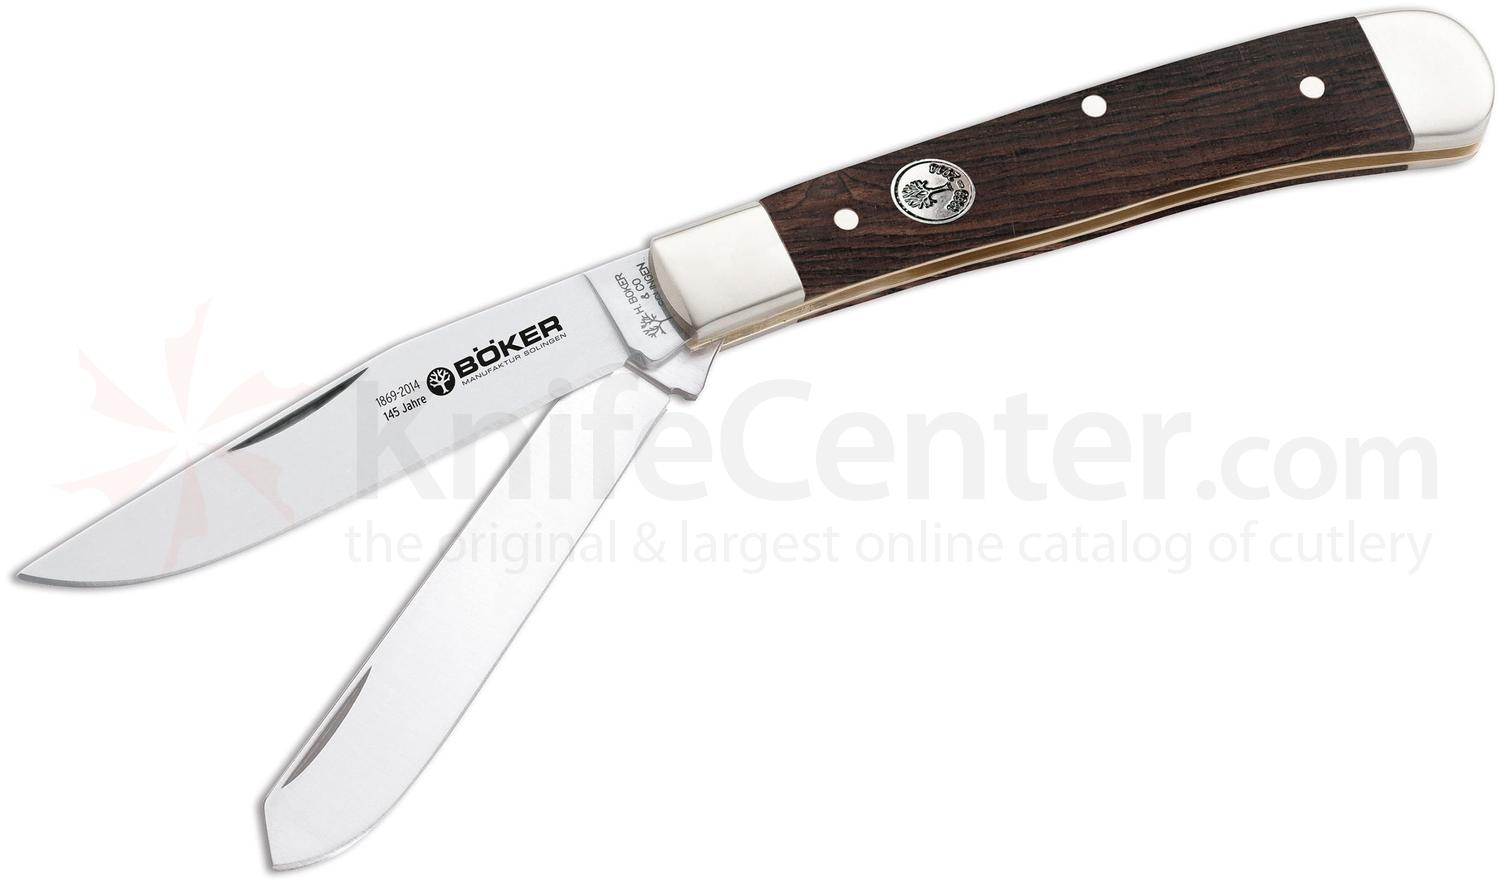 Boker Anniversary Two Blade Trapper, Grenadill Wood, 4.17 inch Closed